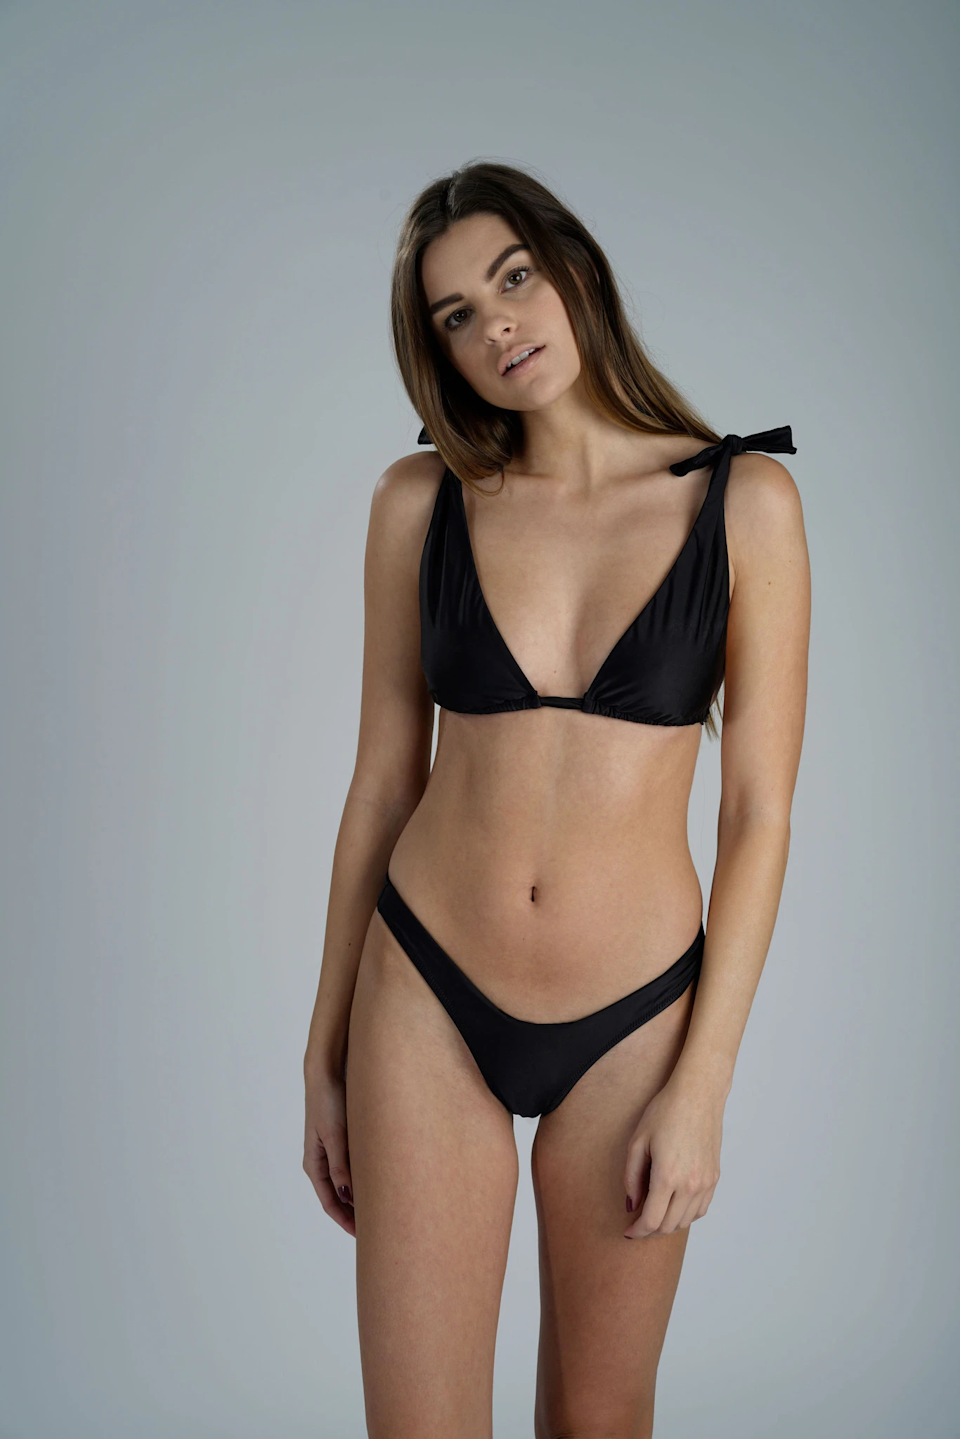 """<h2>Sidway Janet Halter </h2><br><strong>Size Range: XS-L</strong><br><br><em>Shop<strong><a href=""""https://sidway.com/collections/shop-all/products/janet-halter-black?variant=34508274119"""" rel=""""nofollow noopener"""" target=""""_blank"""" data-ylk=""""slk:Sidway"""" class=""""link rapid-noclick-resp""""> Sidway</a></strong></em><br><br><strong>SIDWAY</strong> Janet Halter, $, available at <a href=""""https://go.skimresources.com/?id=30283X879131&url=https%3A%2F%2Fsidway.com%2Fcollections%2Fshop-all%2Fproducts%2Fjanet-halter-black%3Fvariant%3D34508274119"""" rel=""""nofollow noopener"""" target=""""_blank"""" data-ylk=""""slk:Sidway"""" class=""""link rapid-noclick-resp"""">Sidway</a><br><br><strong>SIDWAY</strong> Linda Bottom, $, available at <a href=""""https://go.skimresources.com/?id=30283X879131&url=https%3A%2F%2Fsidway.com%2Fcollections%2Fshop-all%2Fproducts%2Flinda-bottom-black%3Fvariant%3D34508699015"""" rel=""""nofollow noopener"""" target=""""_blank"""" data-ylk=""""slk:Sidway"""" class=""""link rapid-noclick-resp"""">Sidway</a>"""